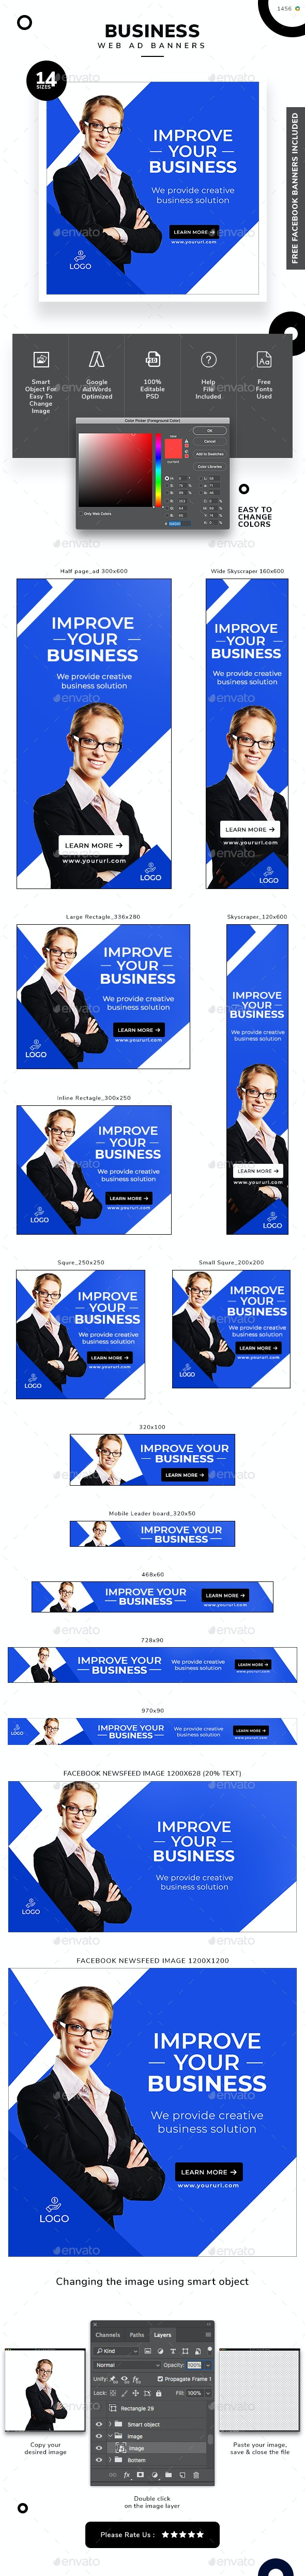 Business Web Banner Set - Banners & Ads Web Elements